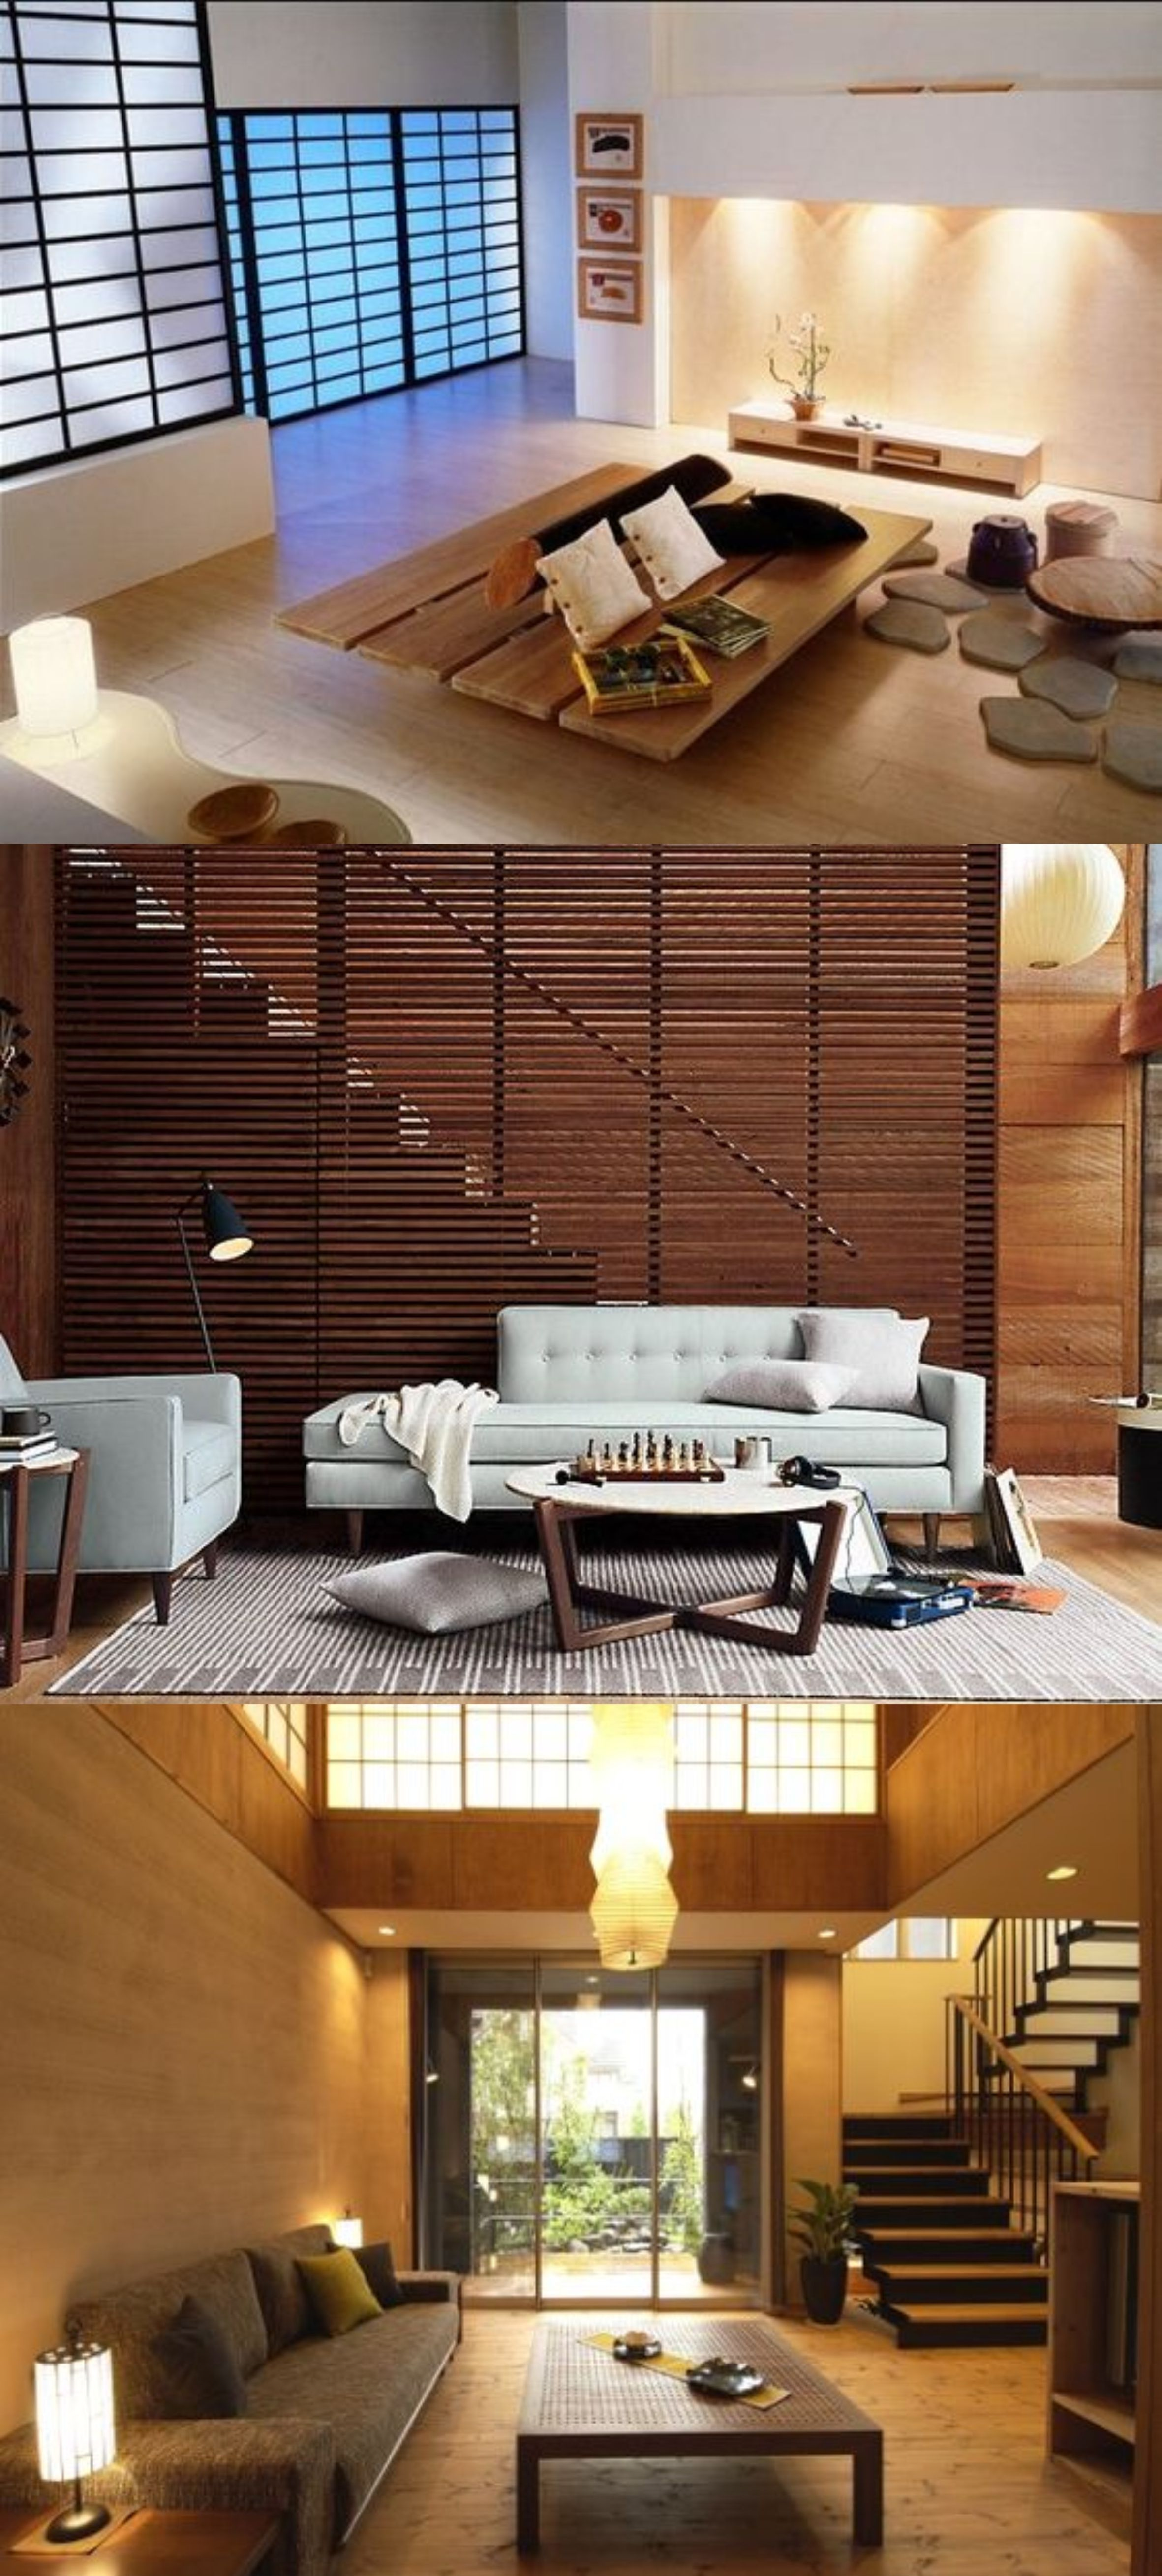 31 Awesome Modern Japanese Living Room Ideas Japanese Living Rooms Japanese Interior Design Small Living Rooms